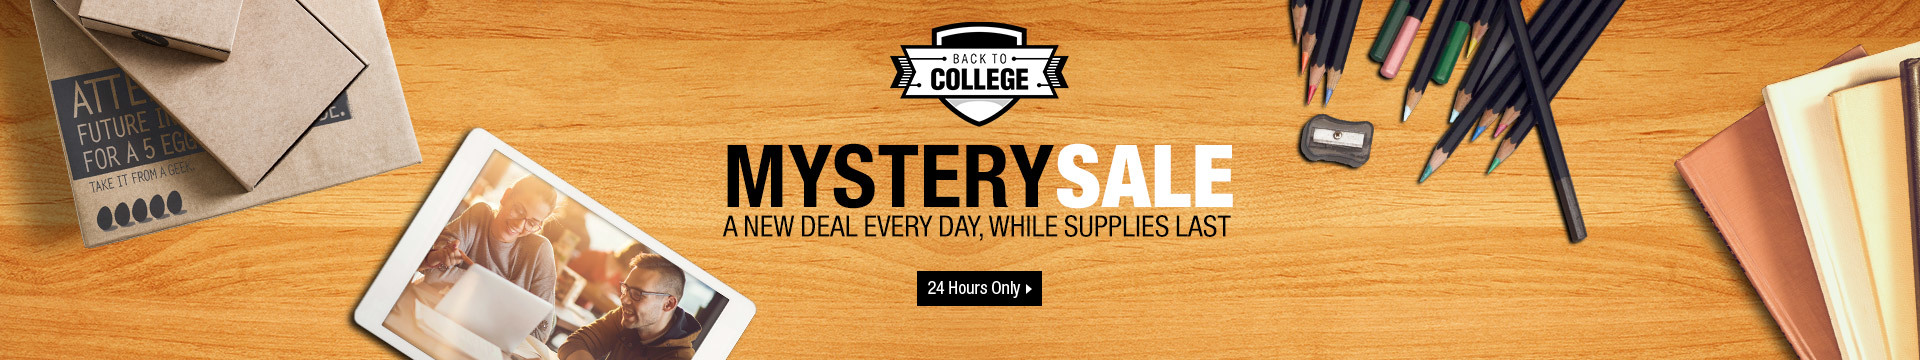 Back-to-College Mystery sale